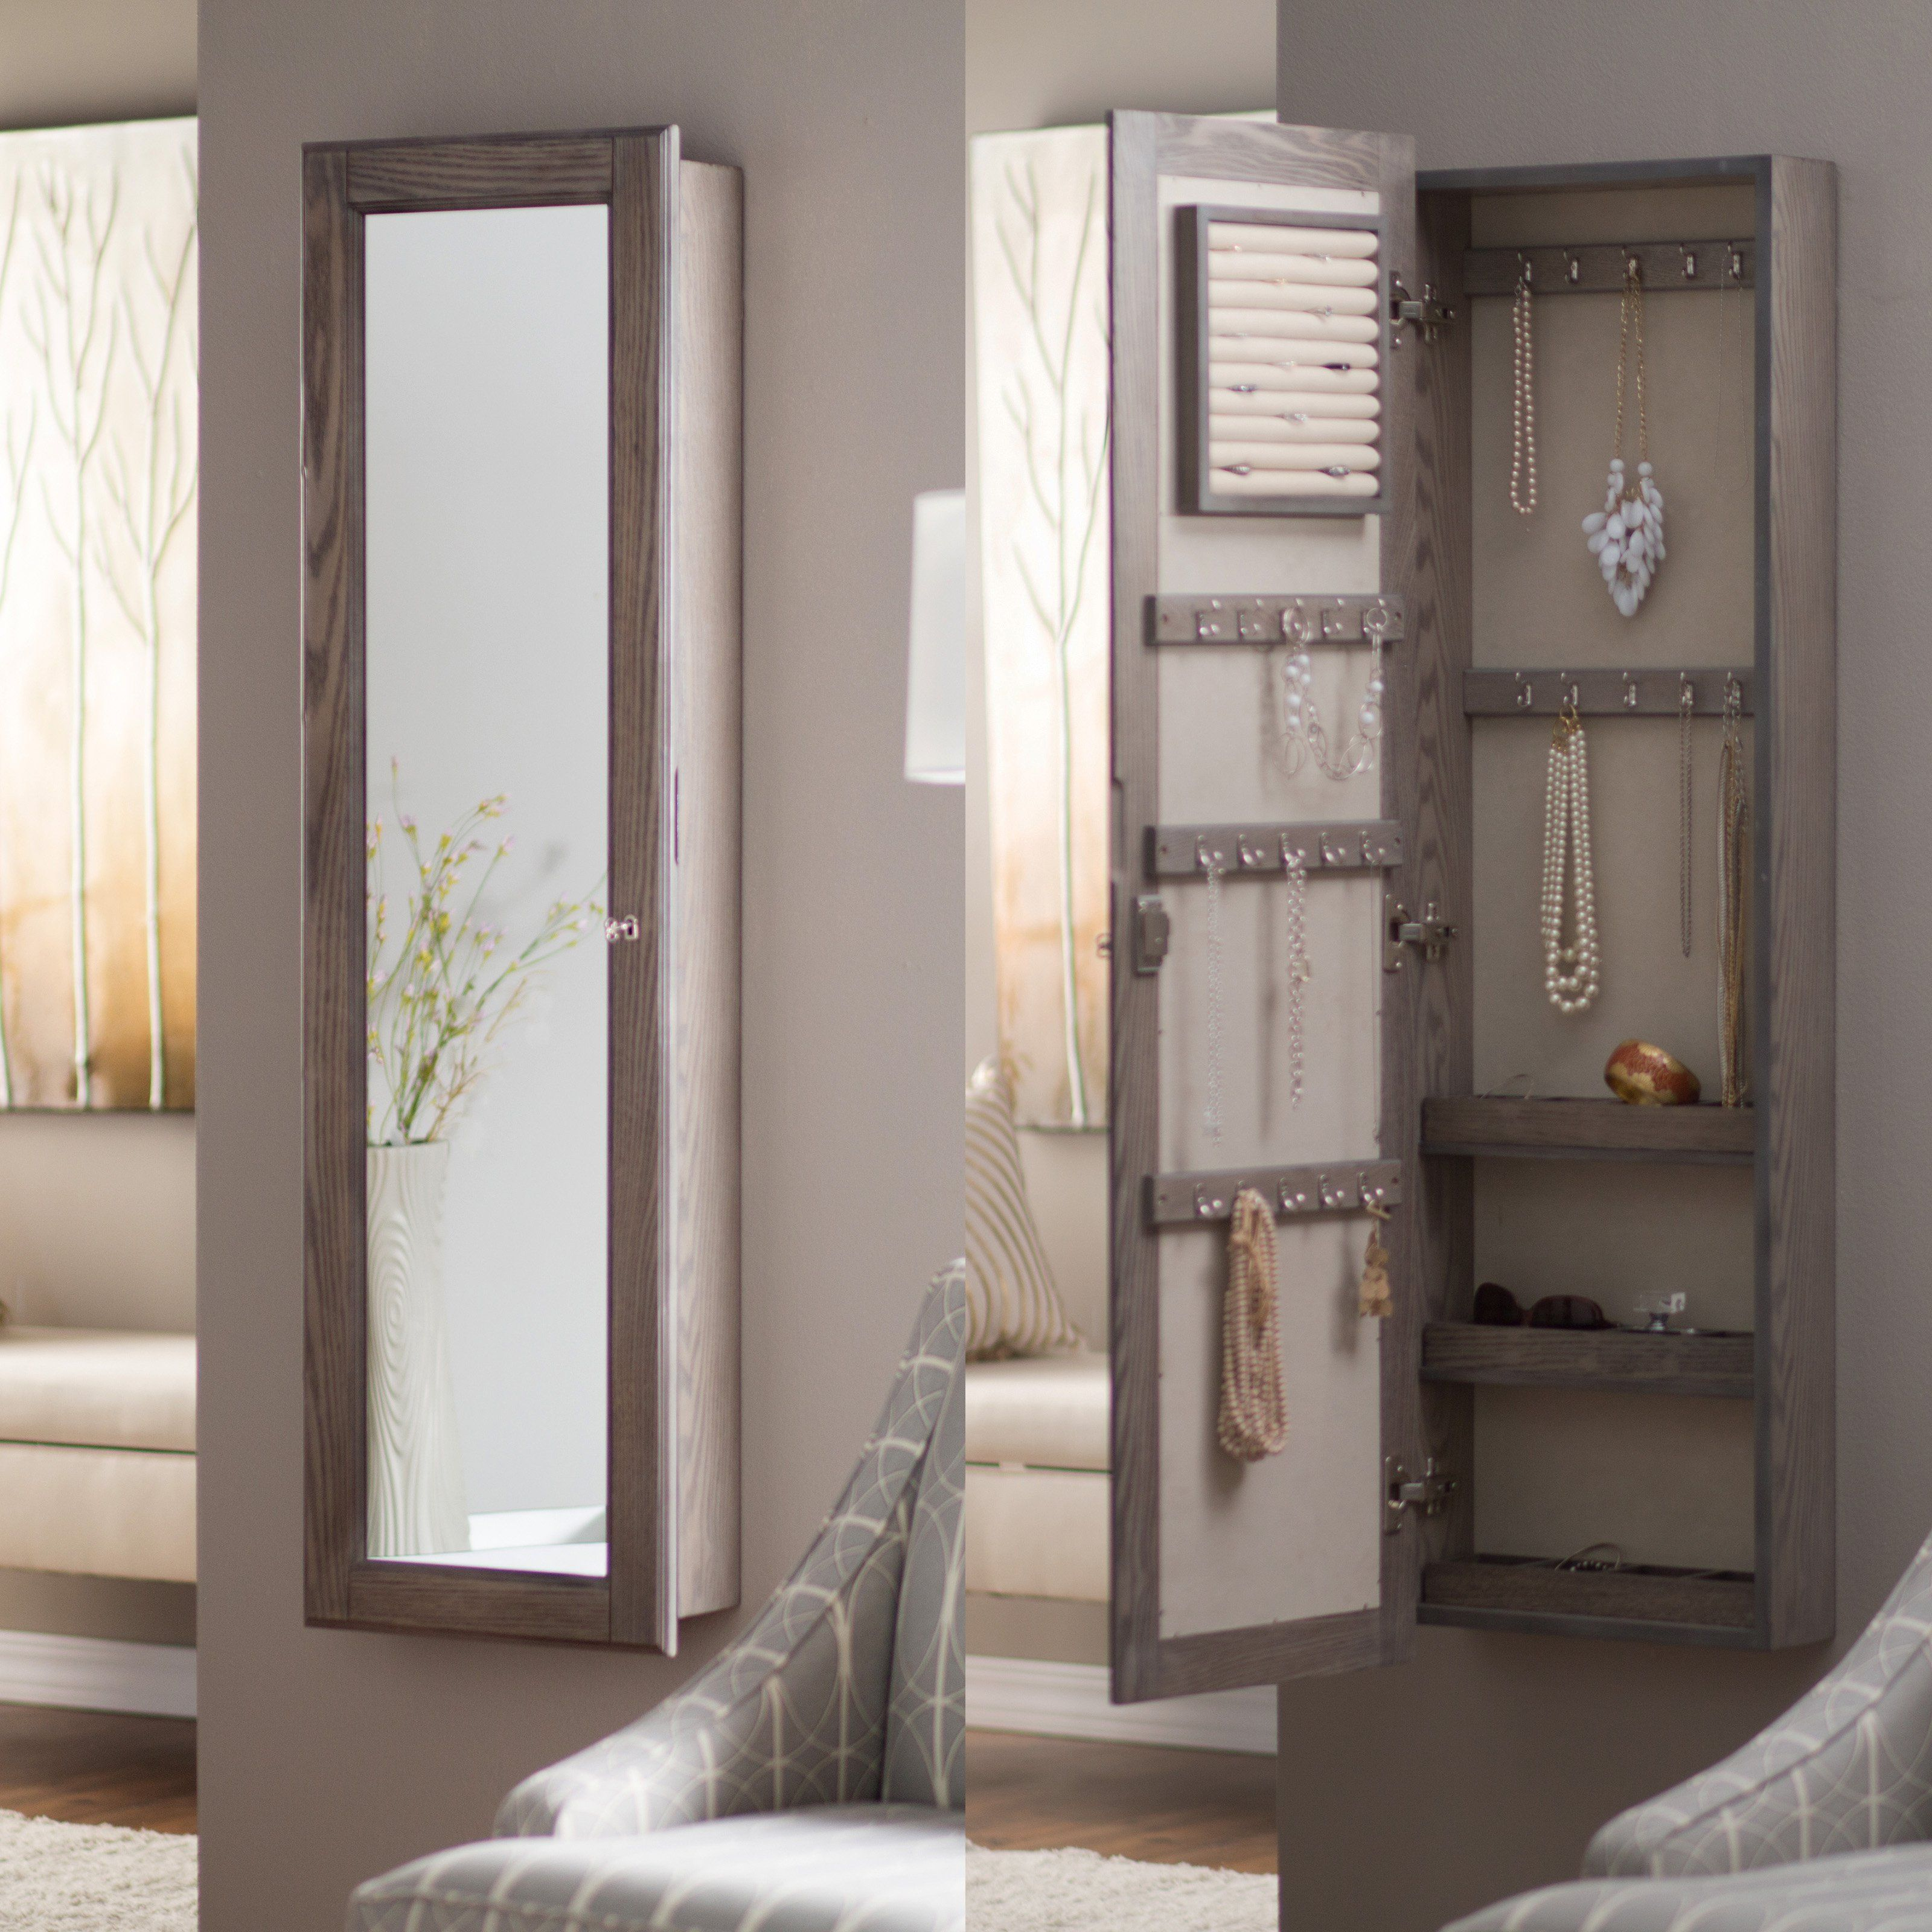 Armoire Easy But With Its Simple Natural Beauty The Wall Mounted Jewelry